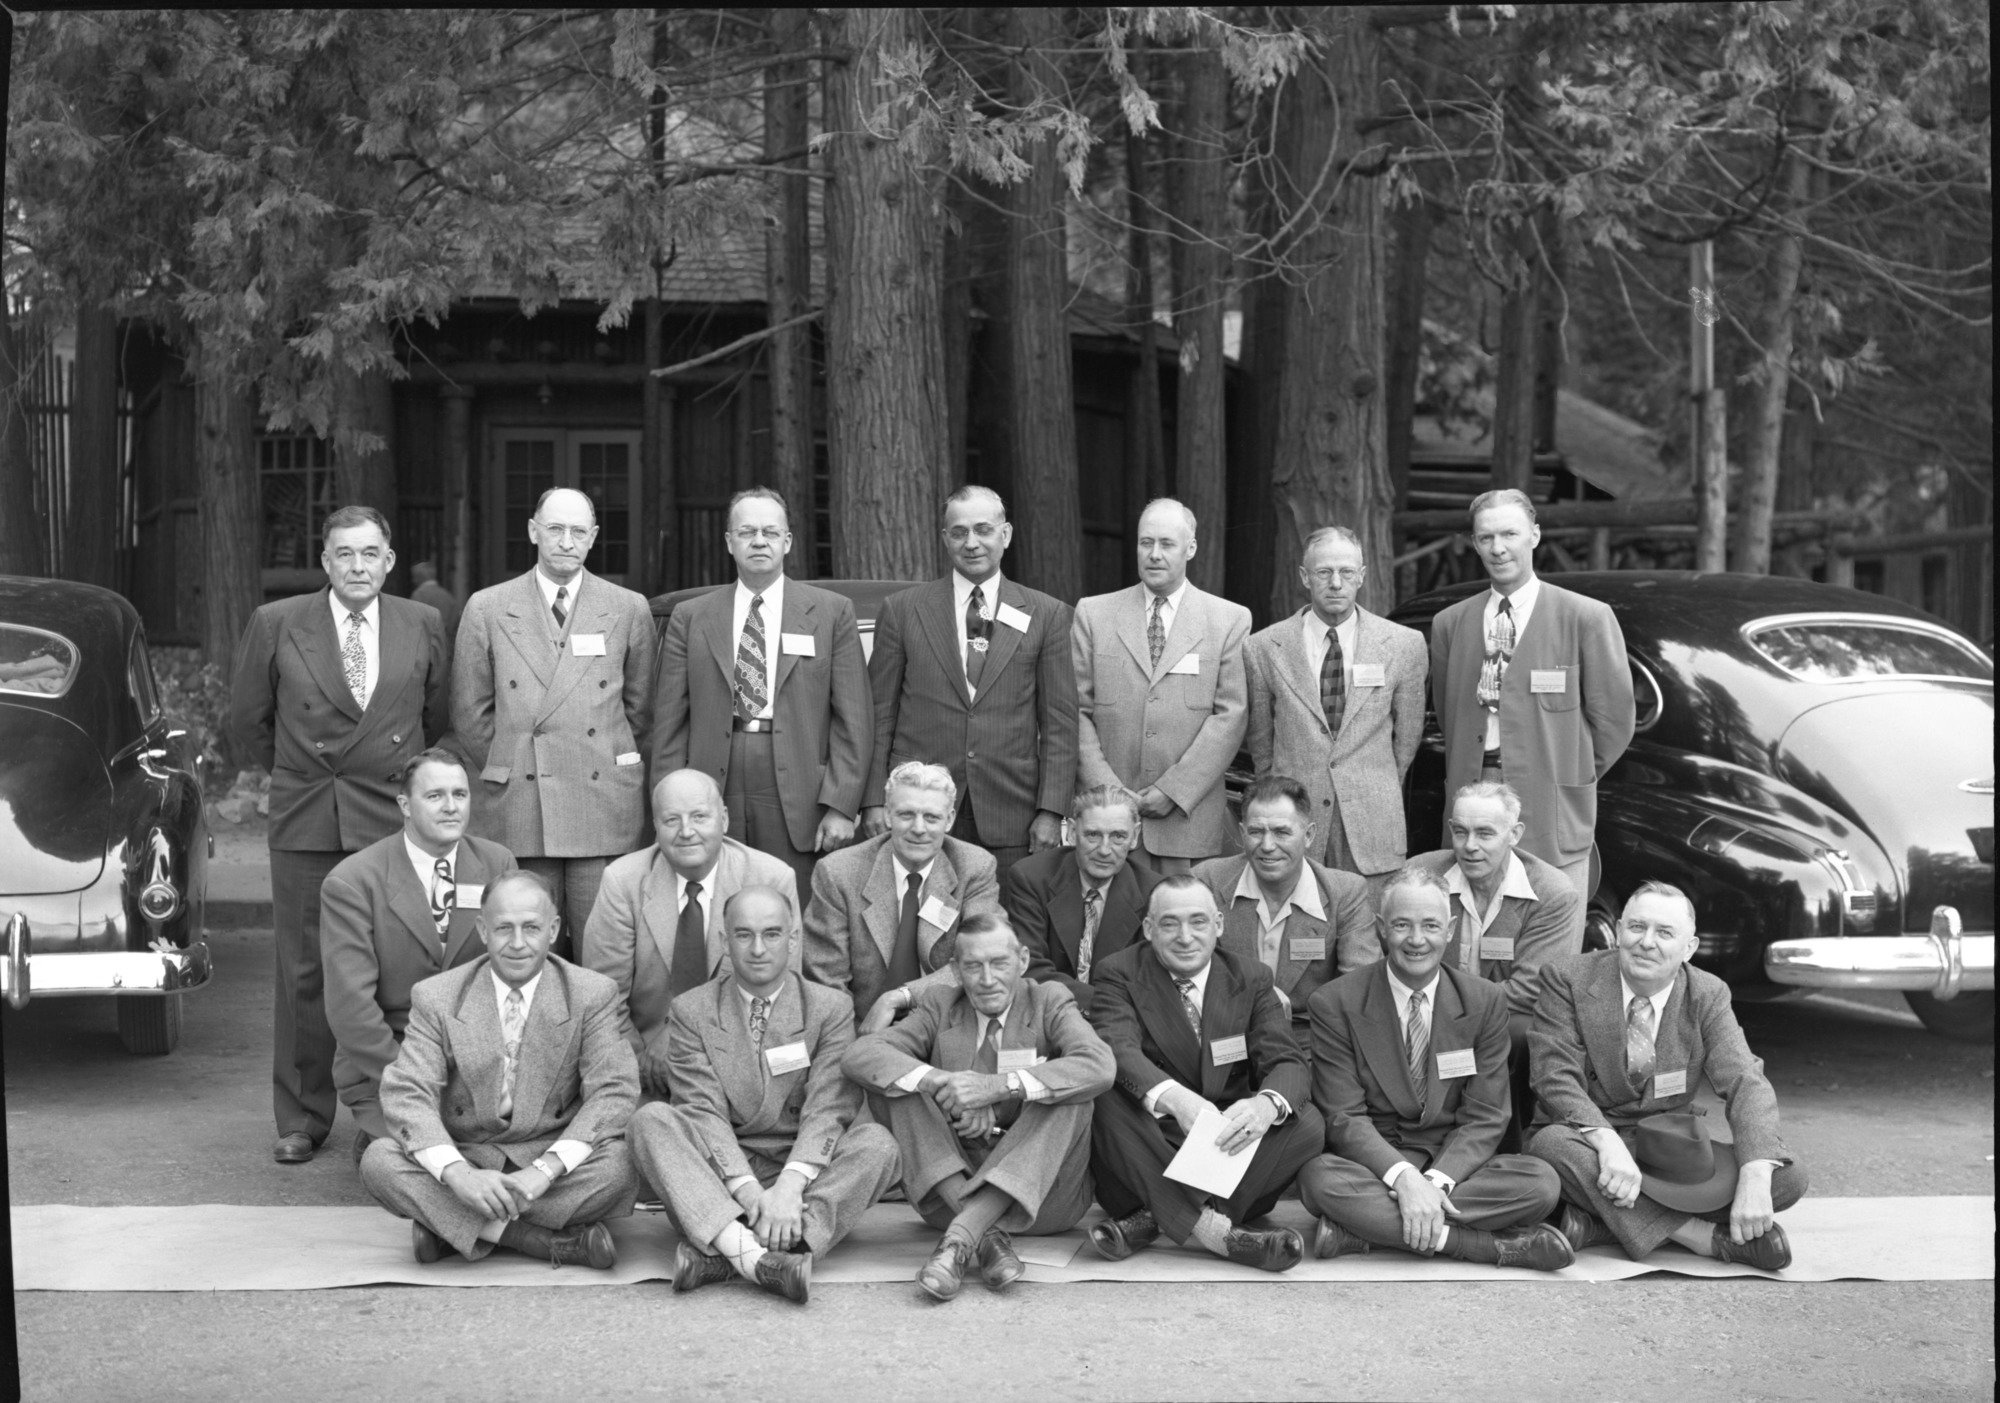 Region Four Area Superintendents with Reg. Dir. O.A. Tomlinson. LEFT TO RIGHT: STANDING: Hugh Peyton, Millerton Lake; Ernest Leavitt, Crater Lake; Carl Russell, Yosemite; Preston Macy, Olympic; Oscar W. Carlton, Asst. Supt. Sequoia-Kings; William H. Gibbs, Pinnacles; Frank R. Givens, Joshua Tree; and Walter Finn, Muir Woods. KNEELING: Donald M. Robinson, Cabrillo N.M.; Eivind Scoyen, Sequoia-Kings; John C. Preston, Mt. Ranier, Don Fisher, Lava Beds; Grant H. Pearson, Mt. McKinley; and Ben C. Miller, Sitka N.M. SEATED: Francis R. Oberhansley, Hawaii; Robert K. Weldon, Whitman N.M.; Tom R Goodwin, Death Valley; O.A. Tomlinson, Regional Director, Region Four; Dan T. Tobin, Lassen Volcanic; Sam Houston, Craters of the Moon.